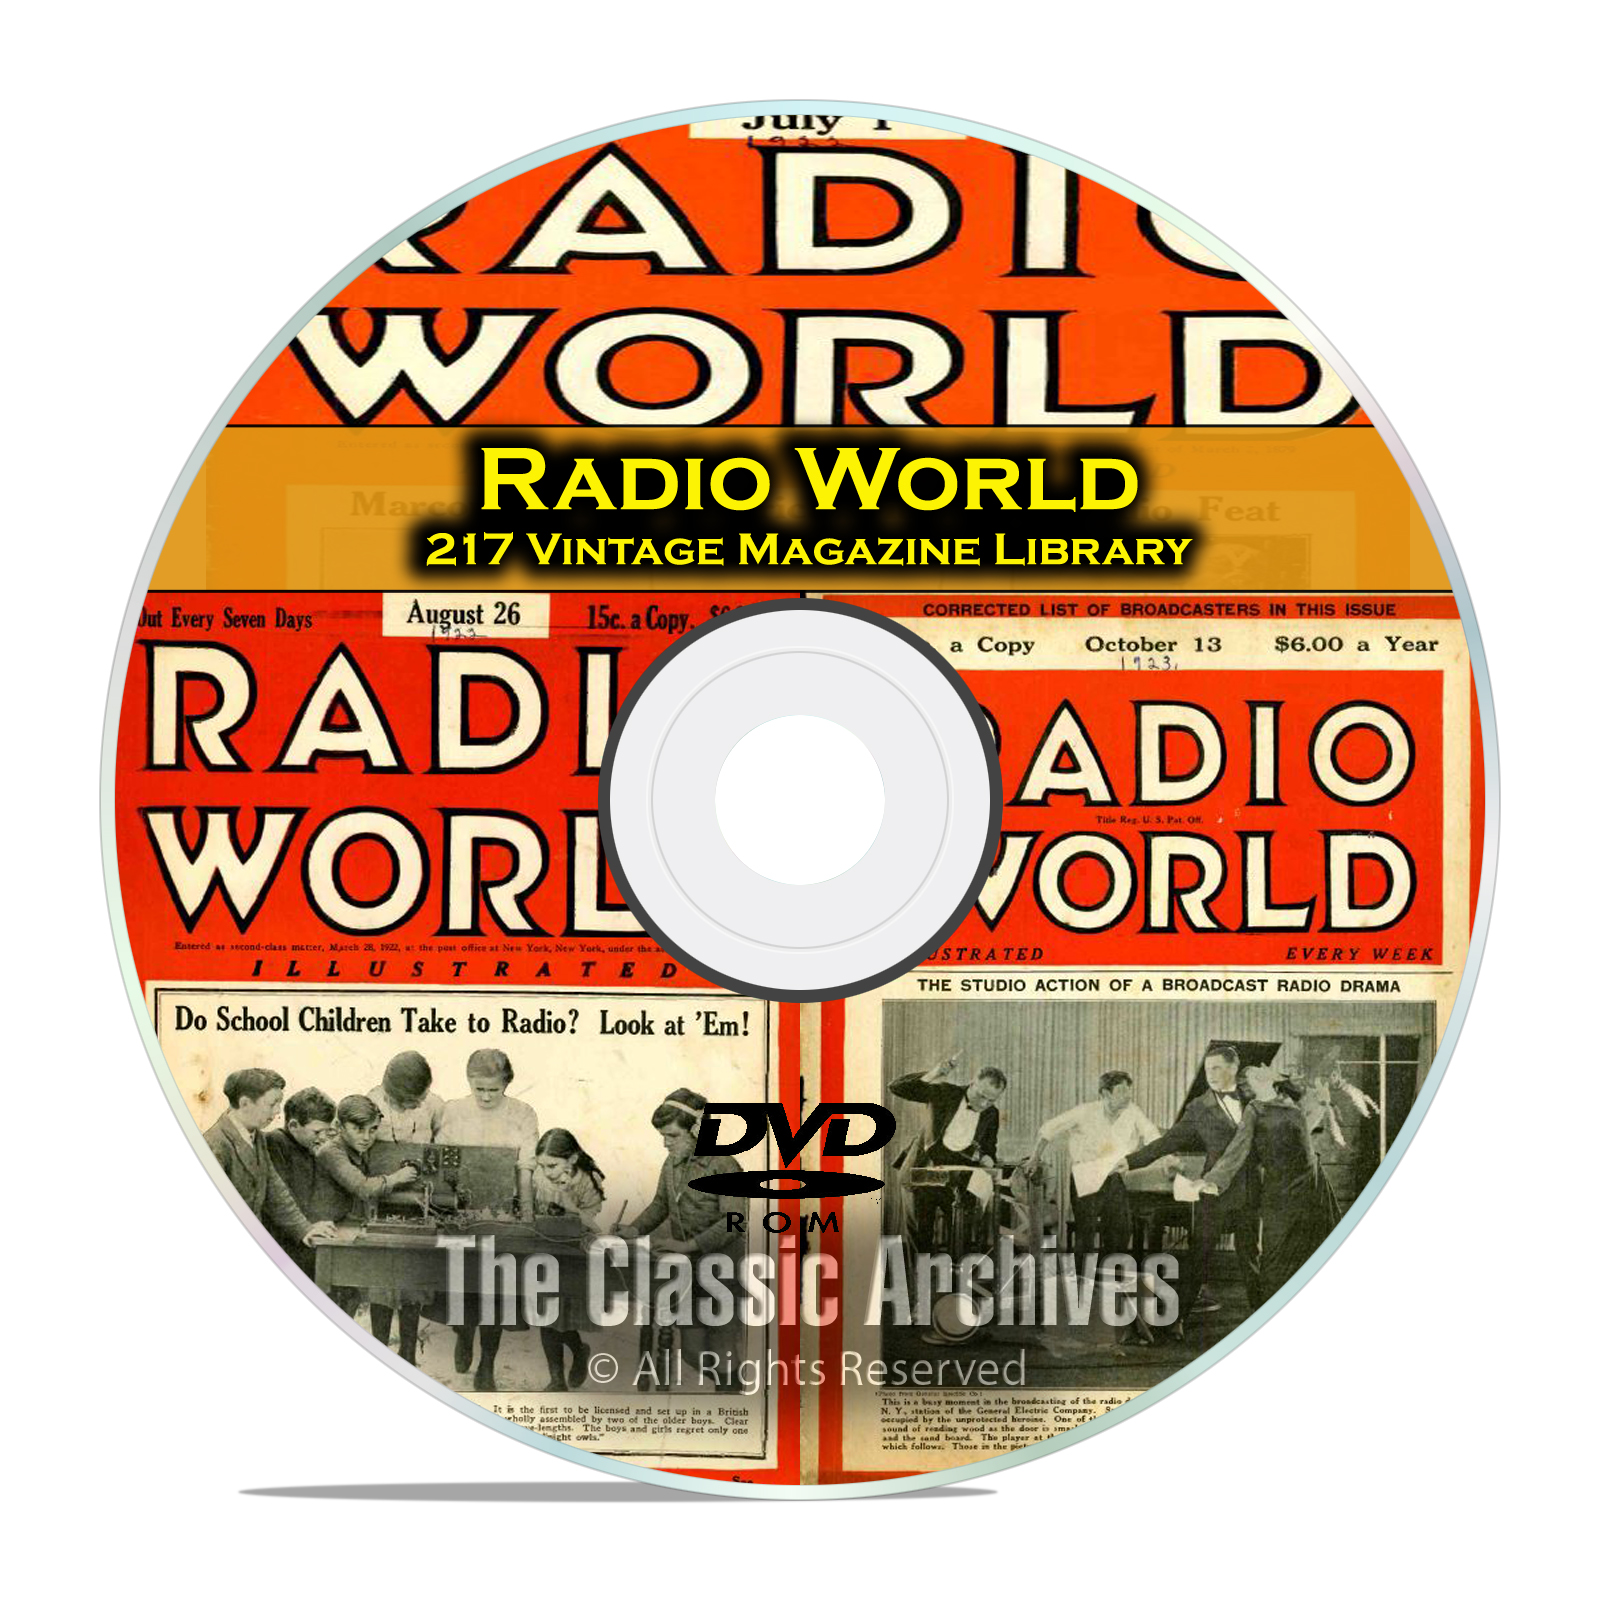 Radio World, 217 Vintage Old Time Radio Magazine Collection in PDF on DVD